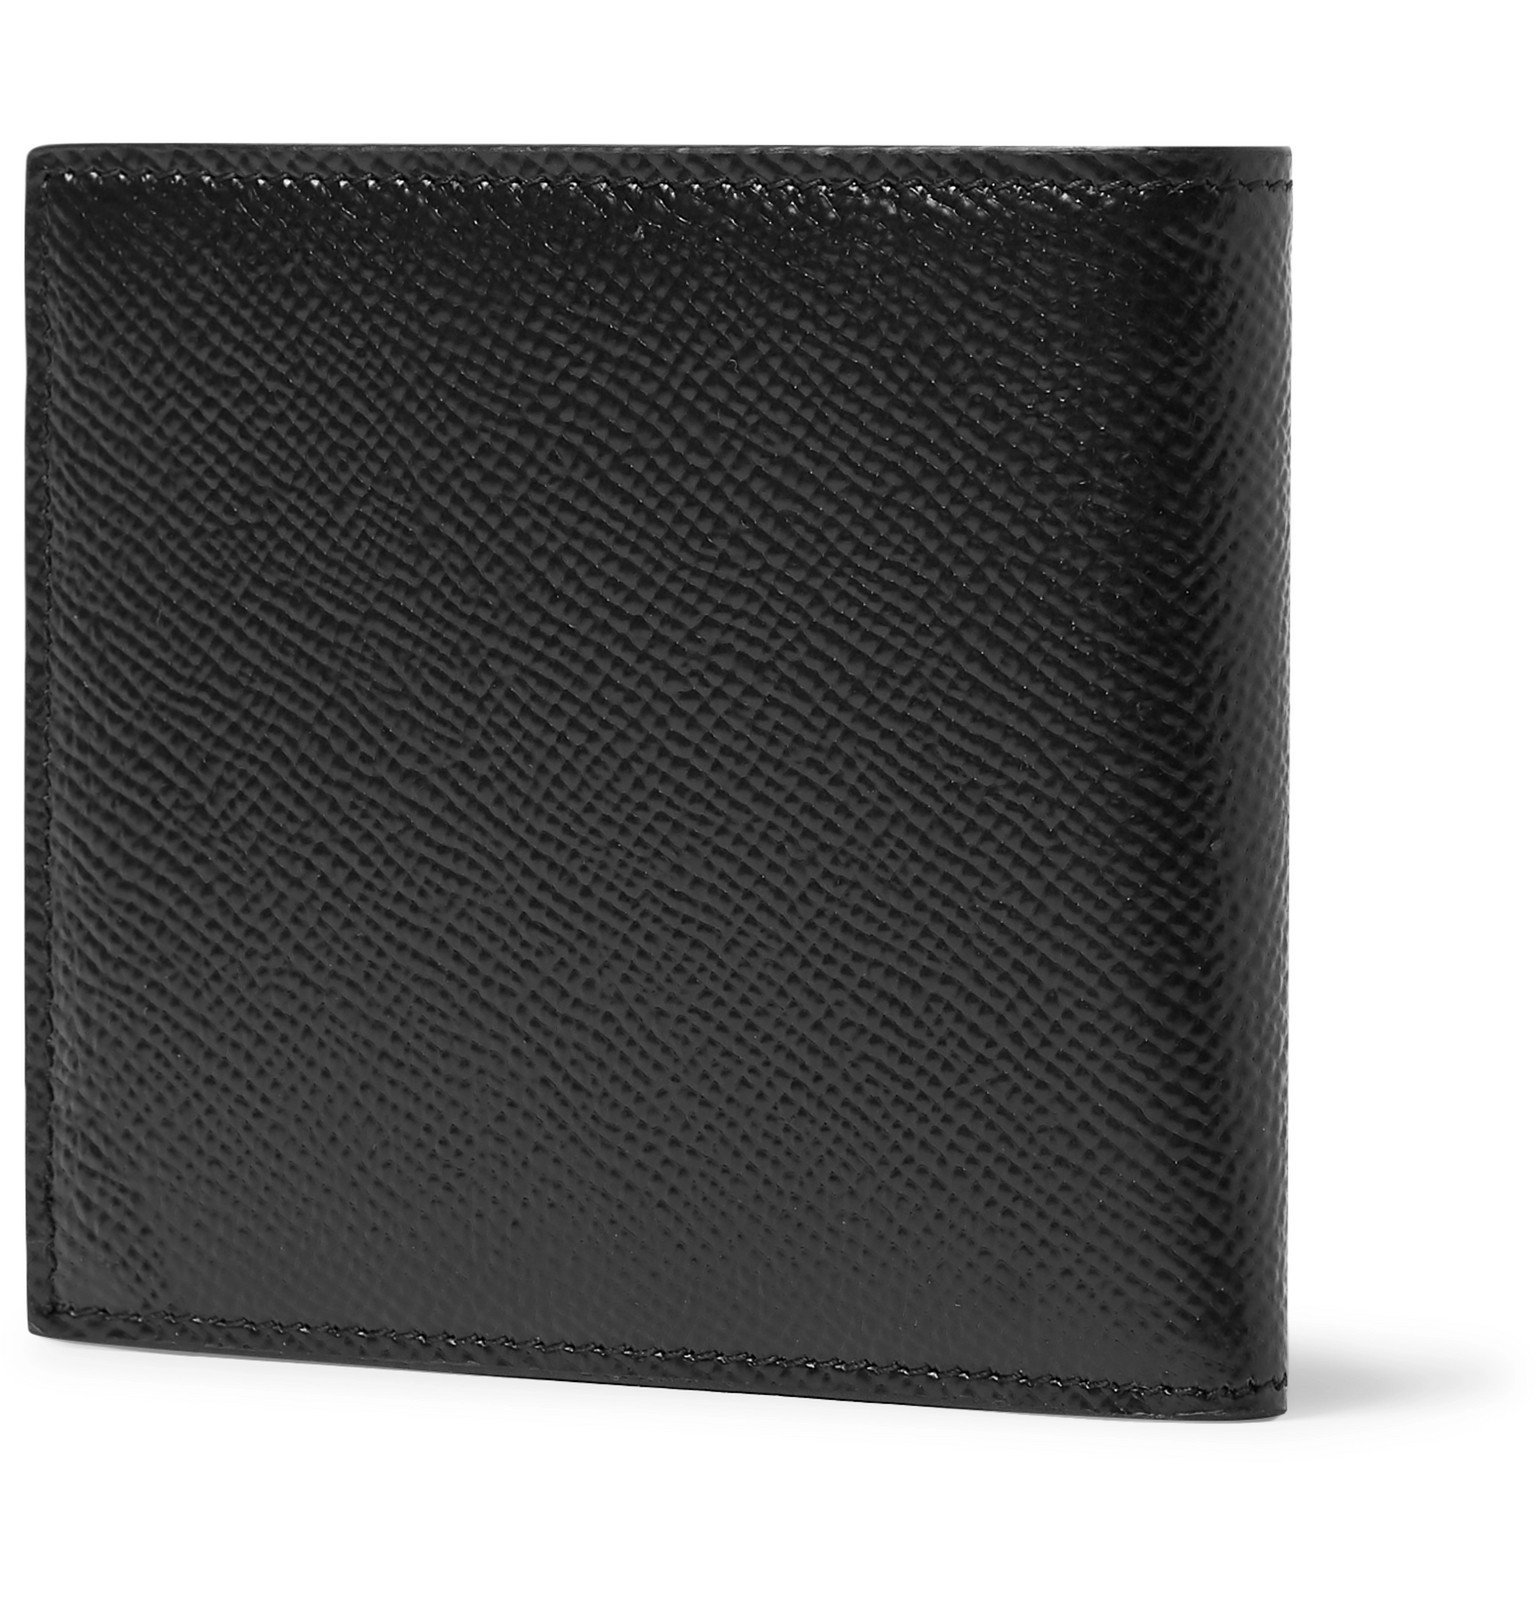 Dolce & Gabbana - Logo-Appliquéd Full-Grain Leather Billfold Wallet - Black